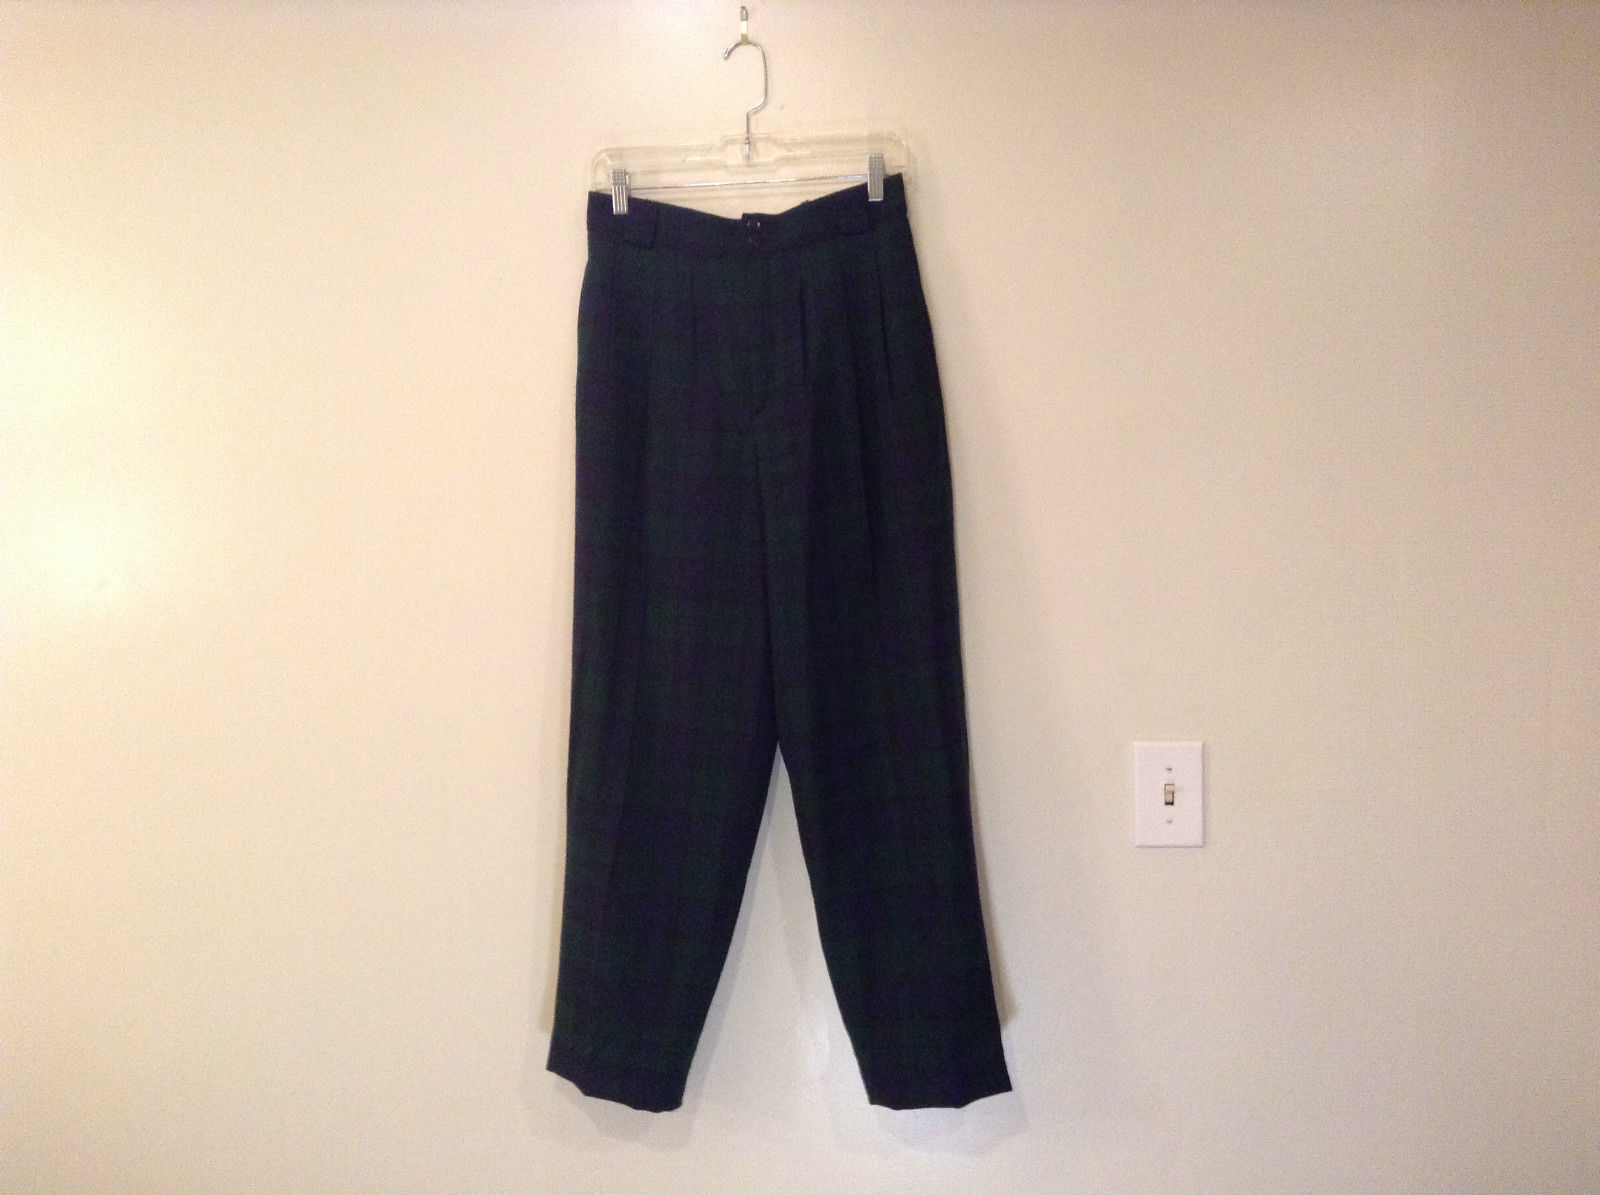 Giorgio Sant Angelo Pure Wool Size 10 Navy Blue Dark Green Plaid Lined Pants